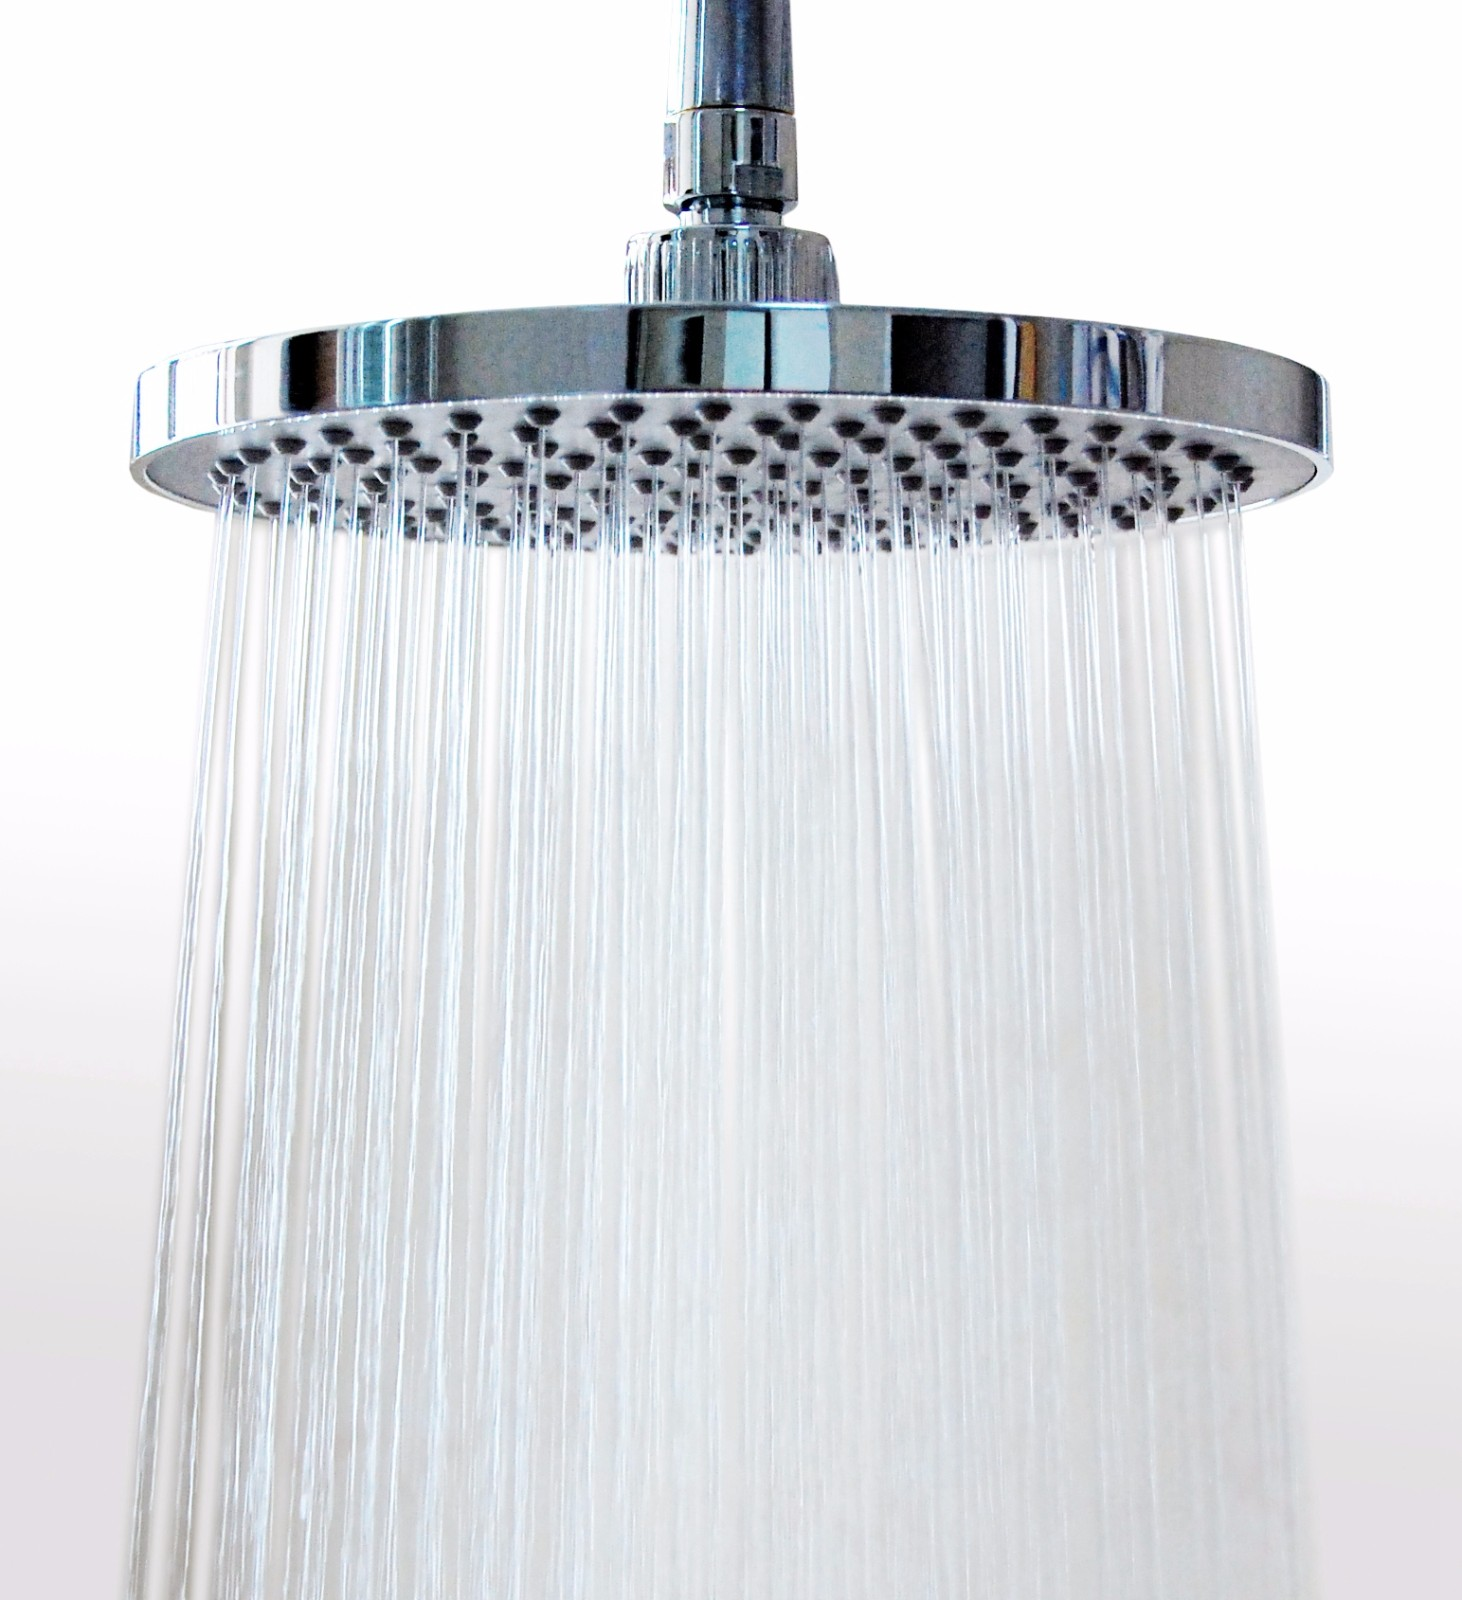 8 Inches (157 Jets) Rainfall Shower Head with Showerhead Swivel Metal Ball Connector Polished Chrome